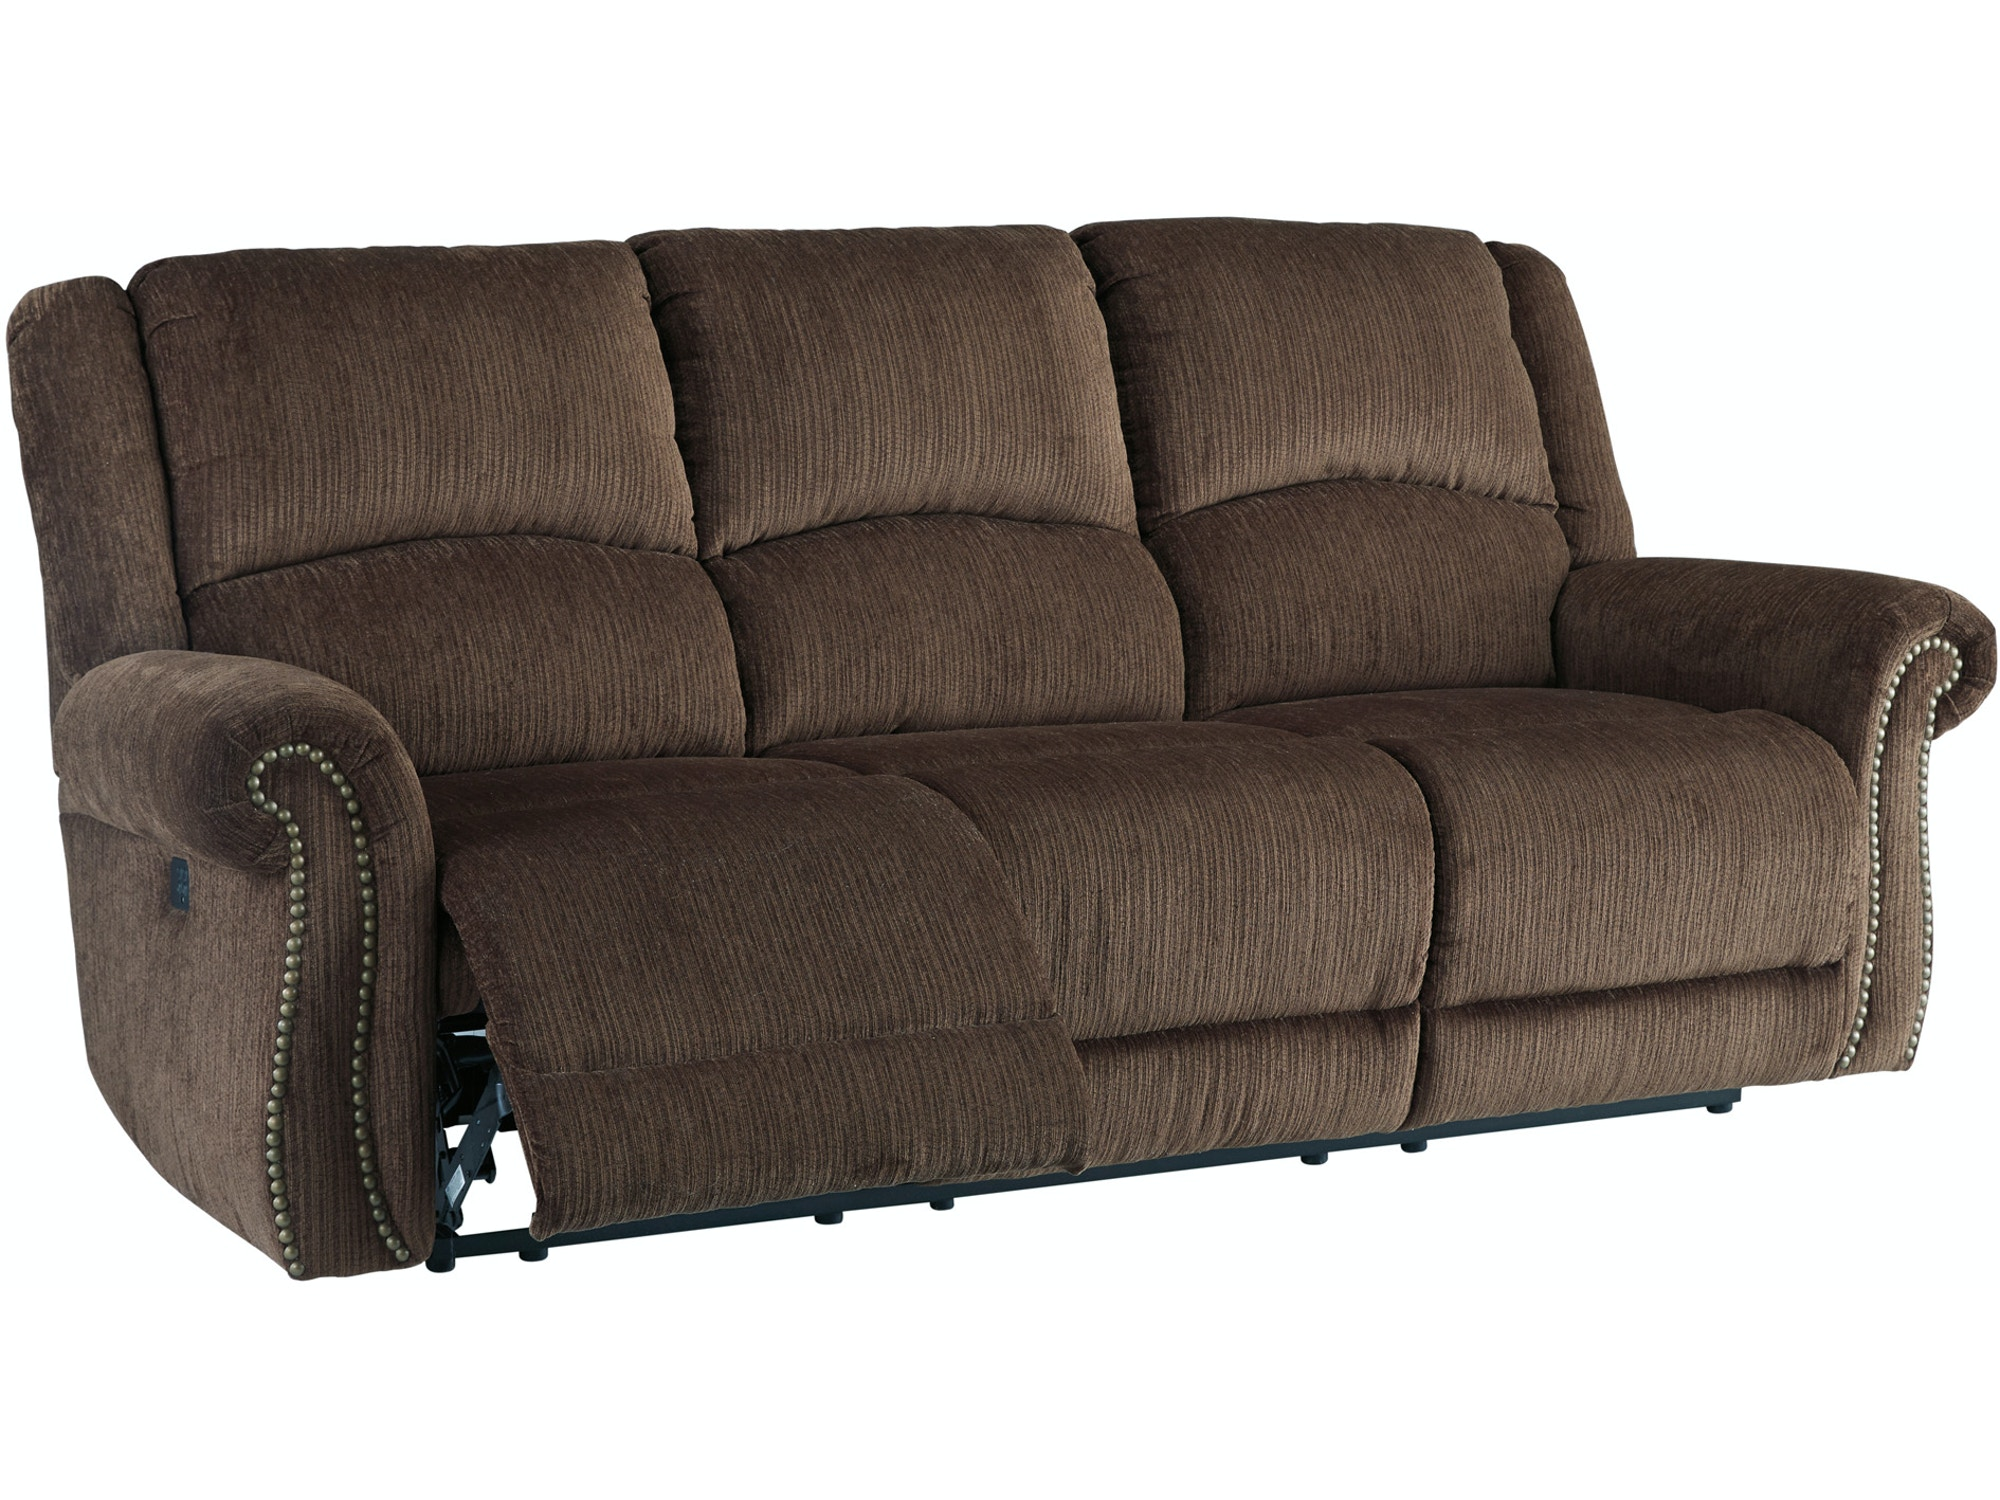 Goodlow Power Sofa 053919